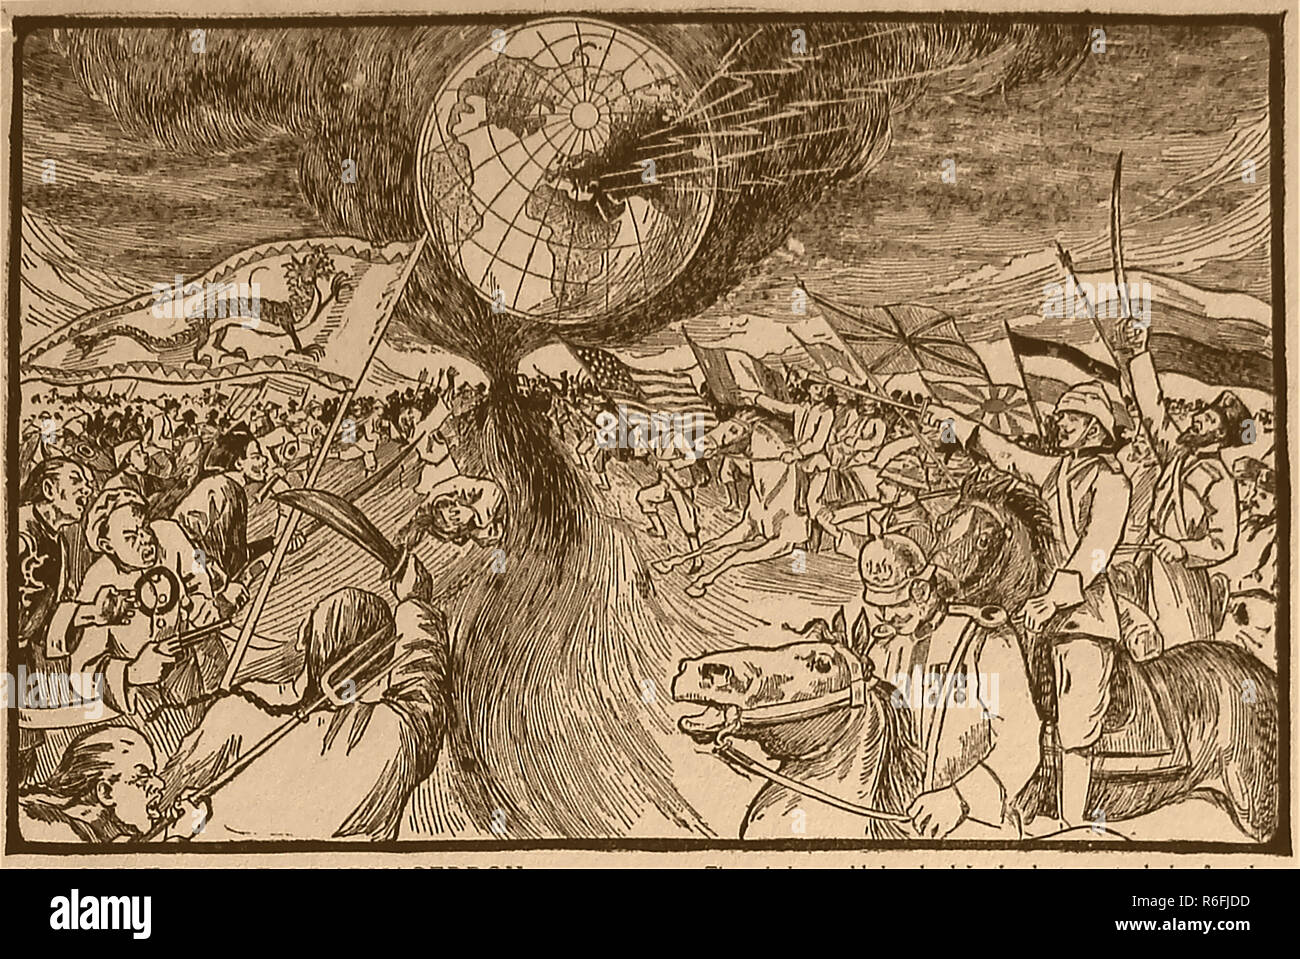 A 1910 illustration showing a predictive view of the Great Battle of Armageddon with reference to the passage in the Christian Bible (Revelations 16:16) - Stock Image